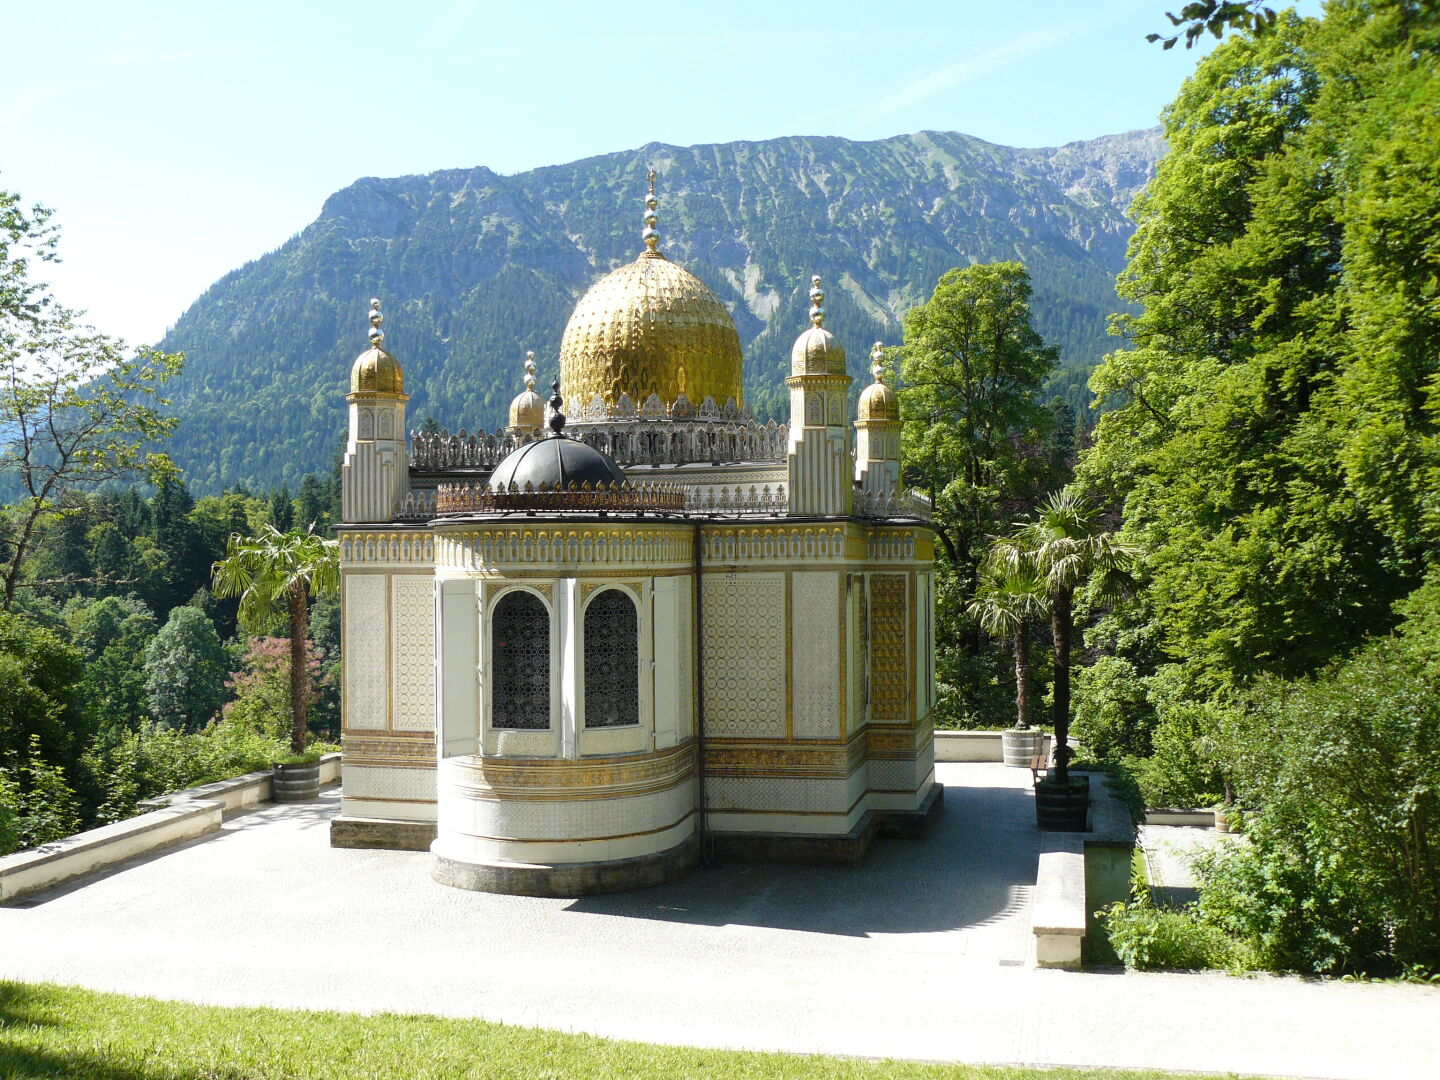 The Morroccan Kiosk in Castle Linderhof park, from the outside...